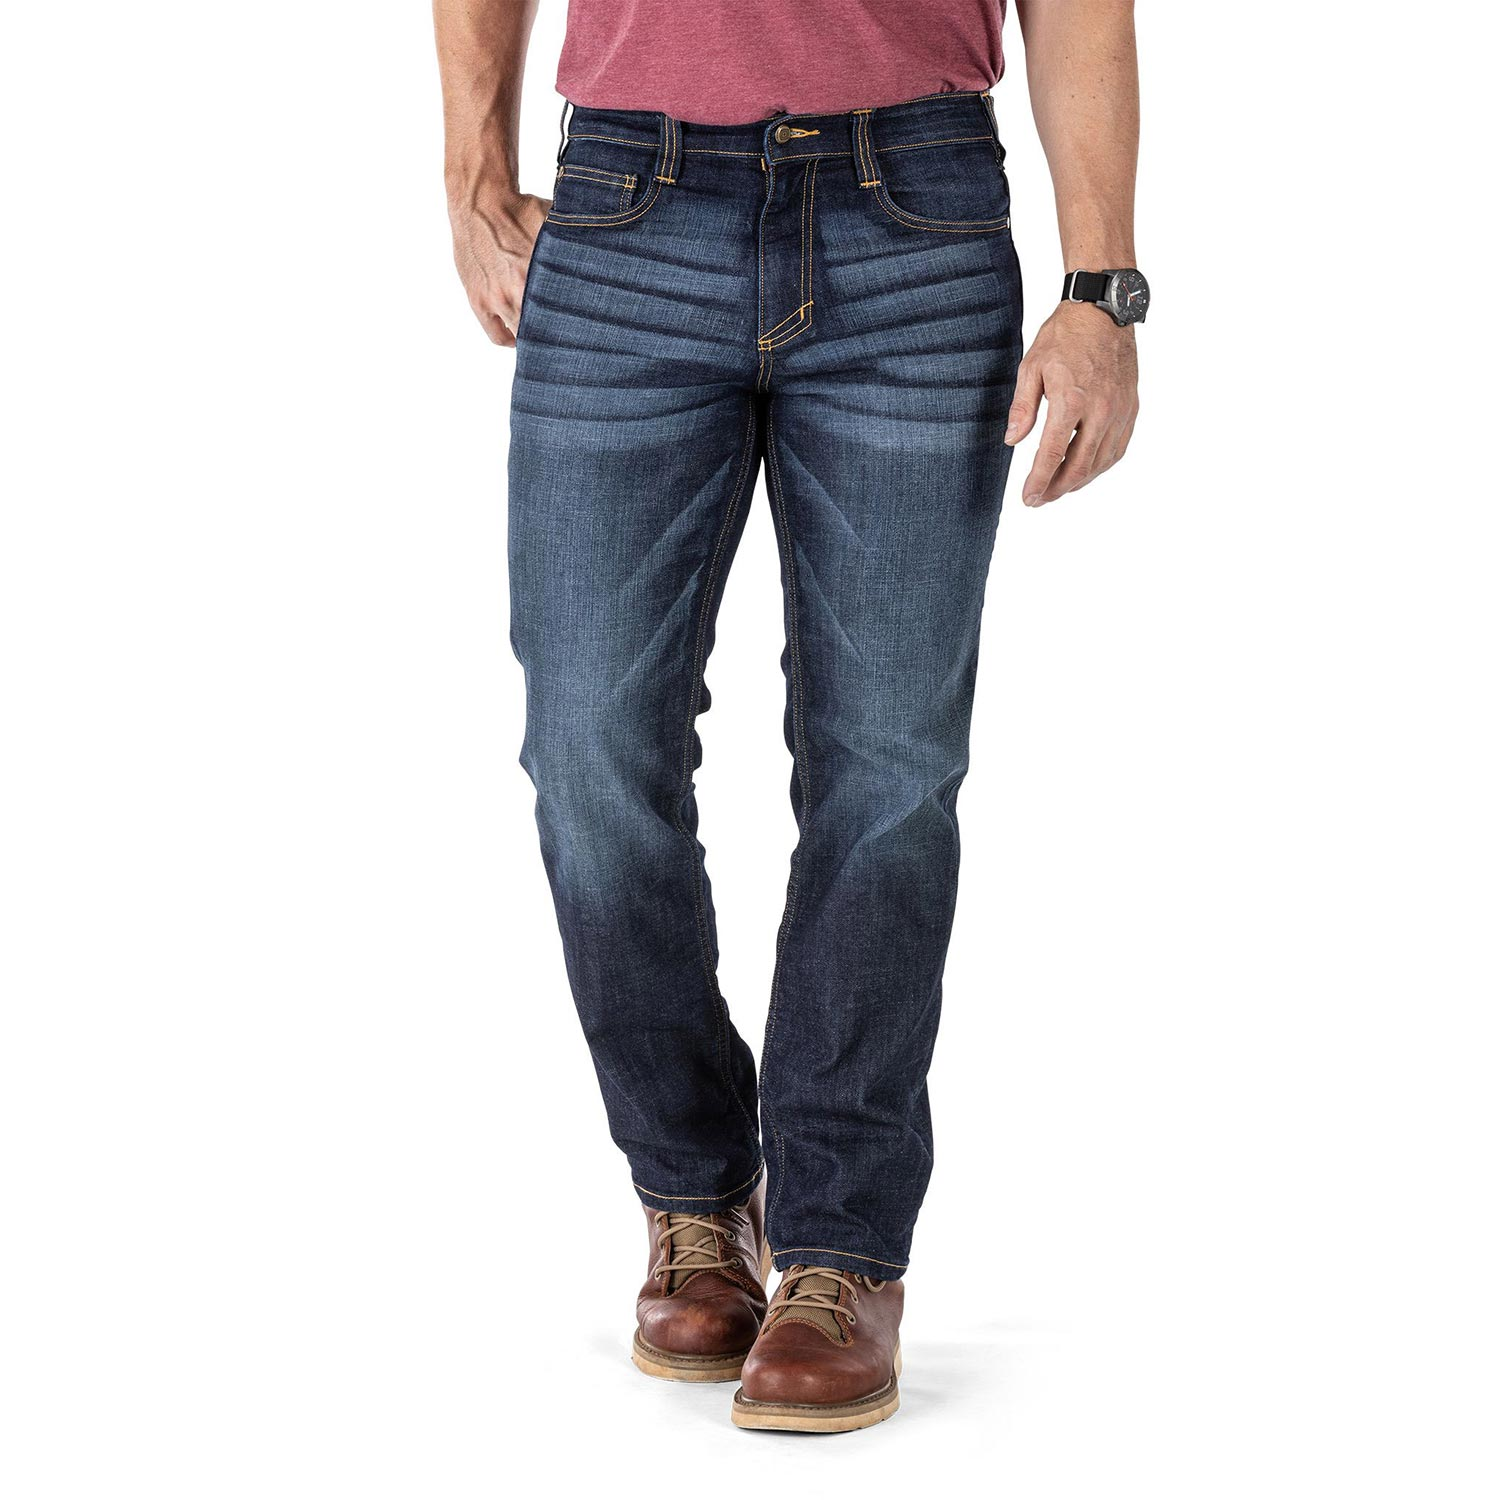 5.11 Defender-Flex Straight Jean